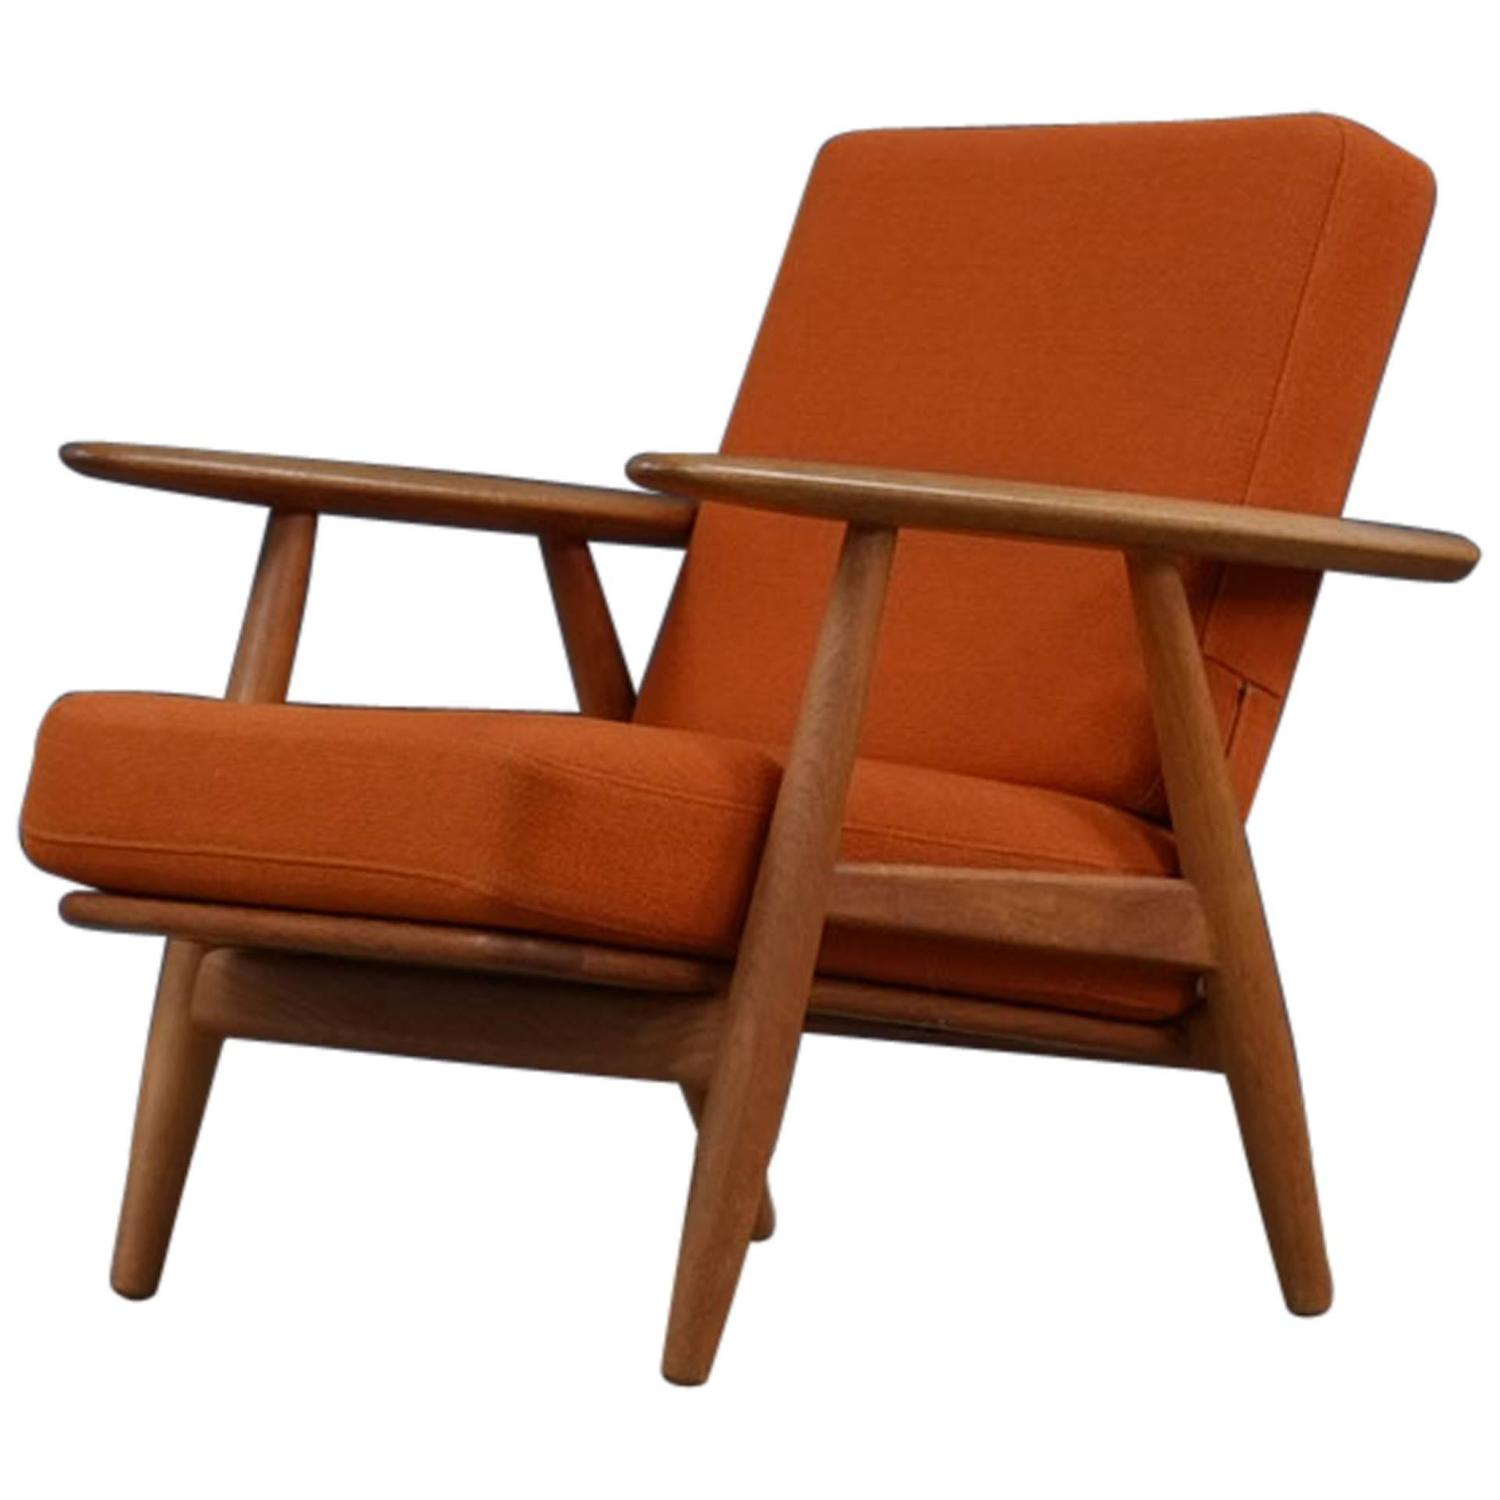 Cigar Lounge Chairs Hans Wegner Cigar Chair At 1stdibs